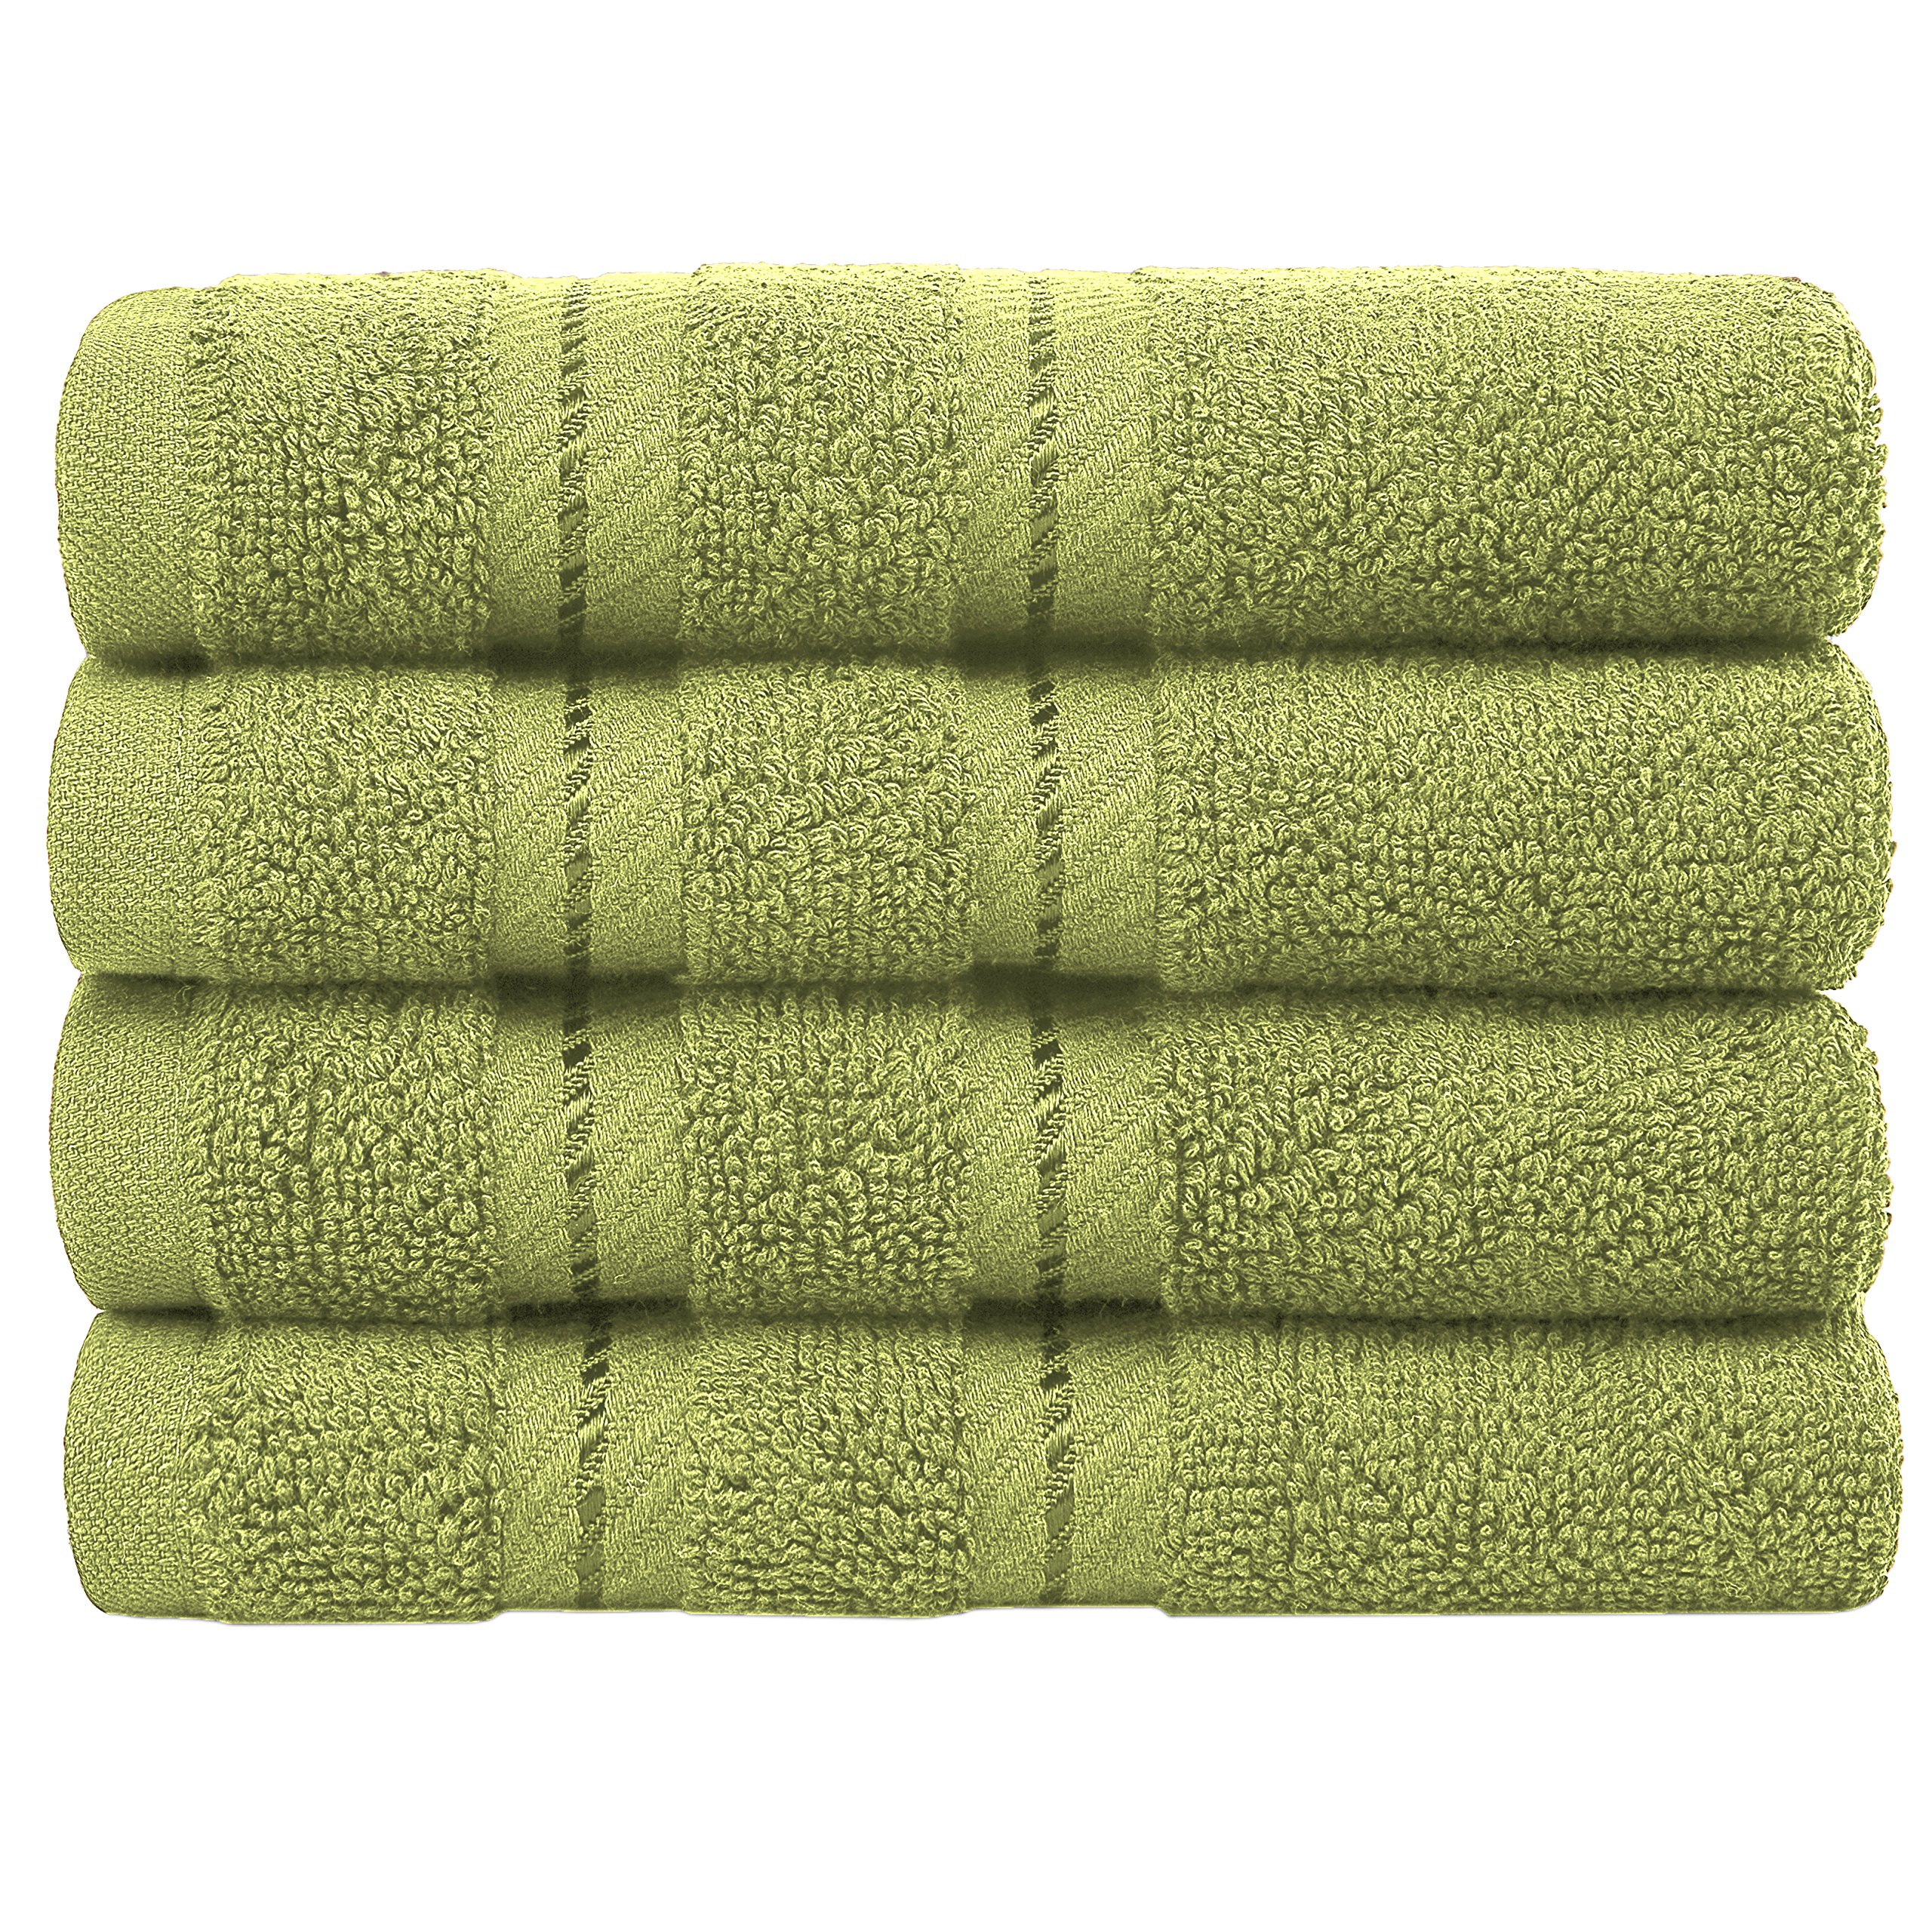 Premium, Turkish Towel Set, Luxury Hotel & Spa Towel Sets Maximum Softness Absorbency American Soft Linen (Washcloth Set, Pistachio Green)